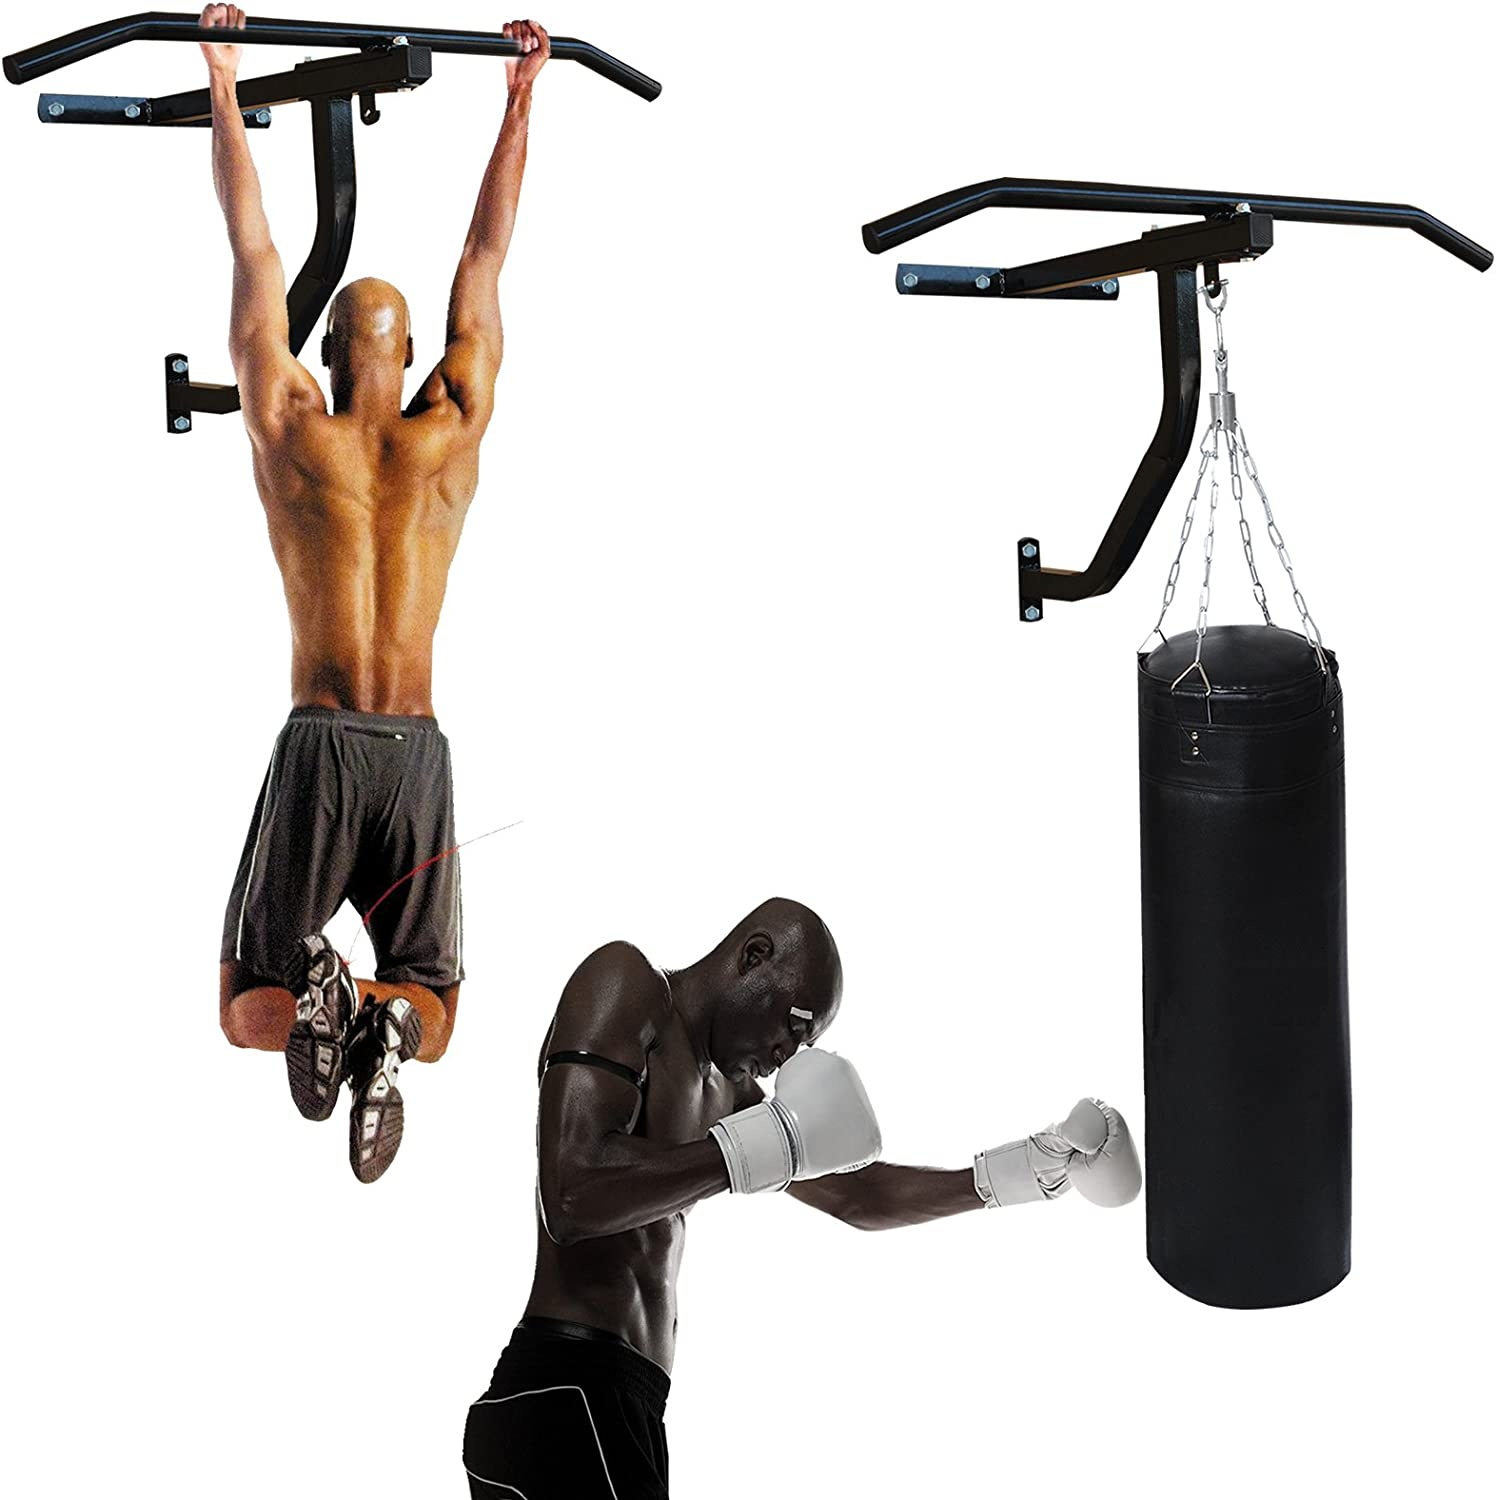 ONEX Punch Bag Pull Up Bar skipping Rope MMA Mauy thai Training Home//Gym Boxing Mitts Hand Gripper Punching Bag Hanger